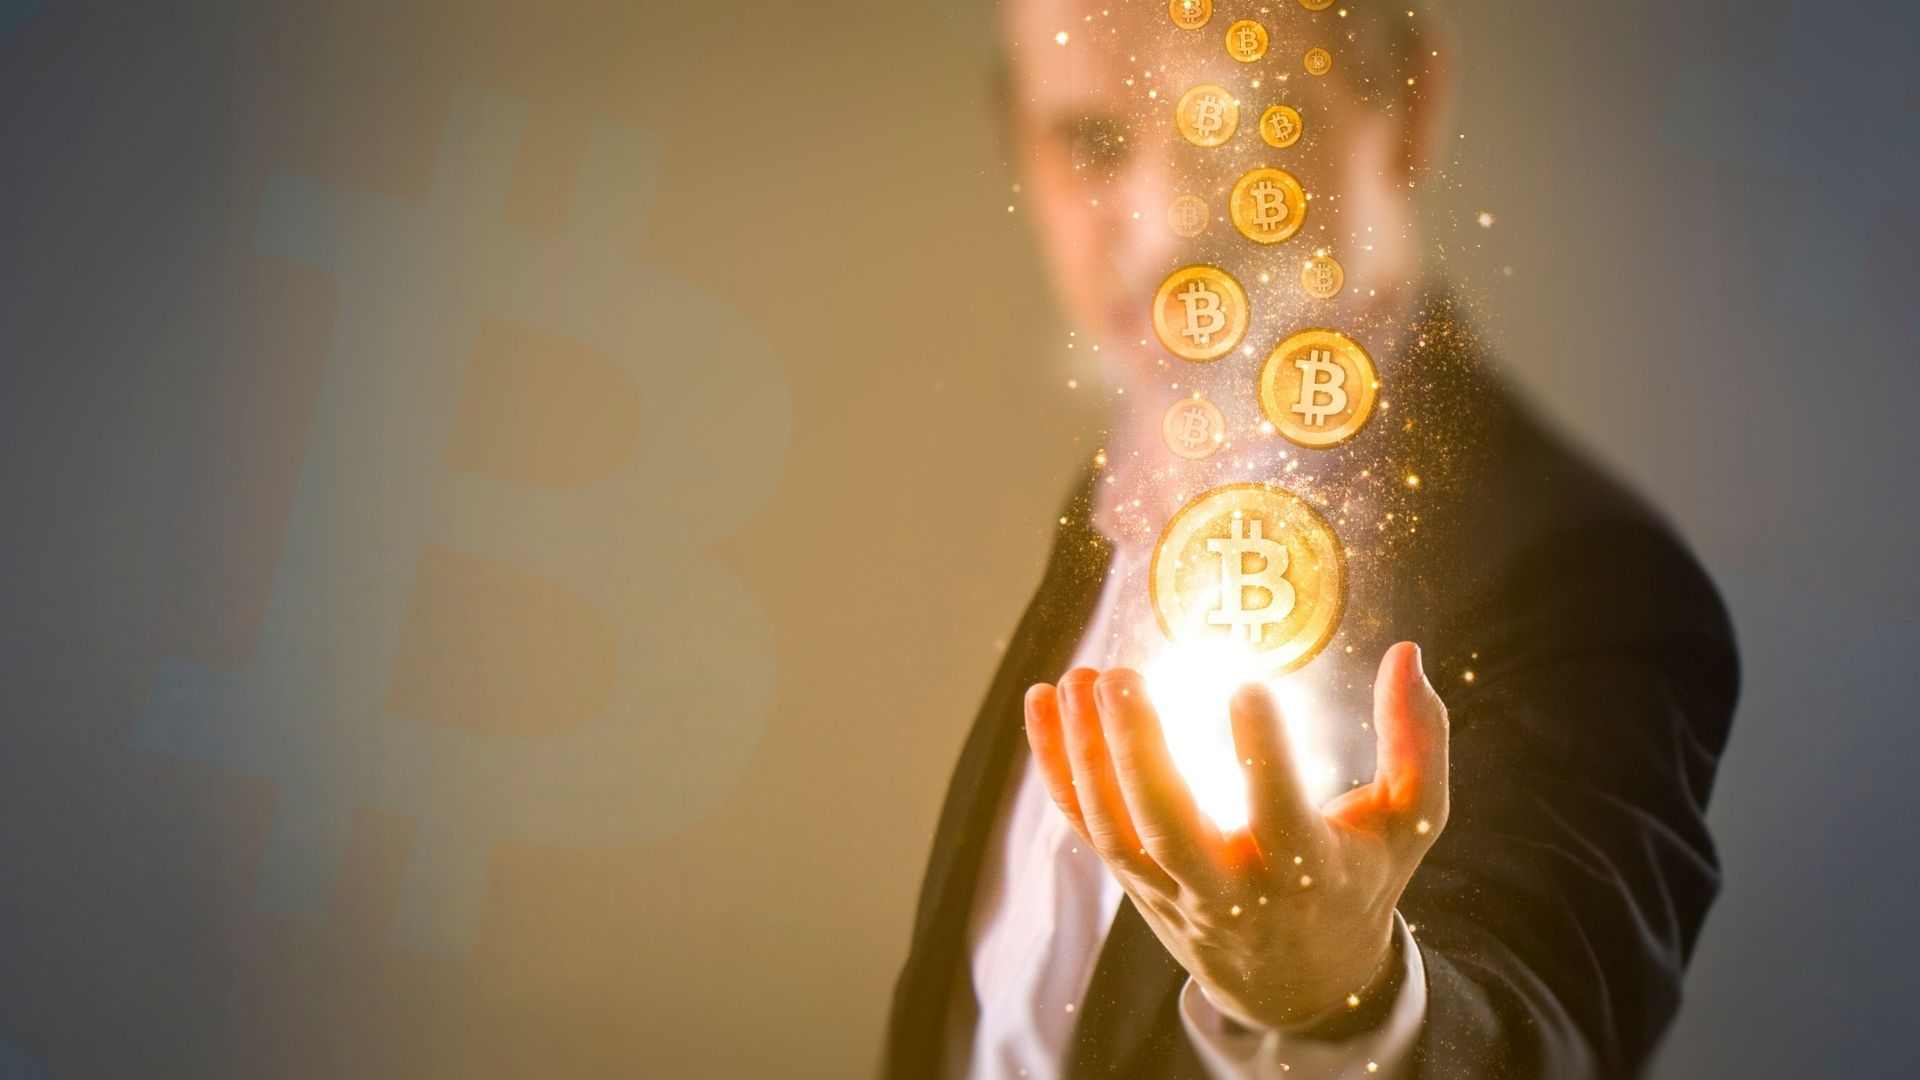 bitcoin cryptocurrency rise and stimulus checks